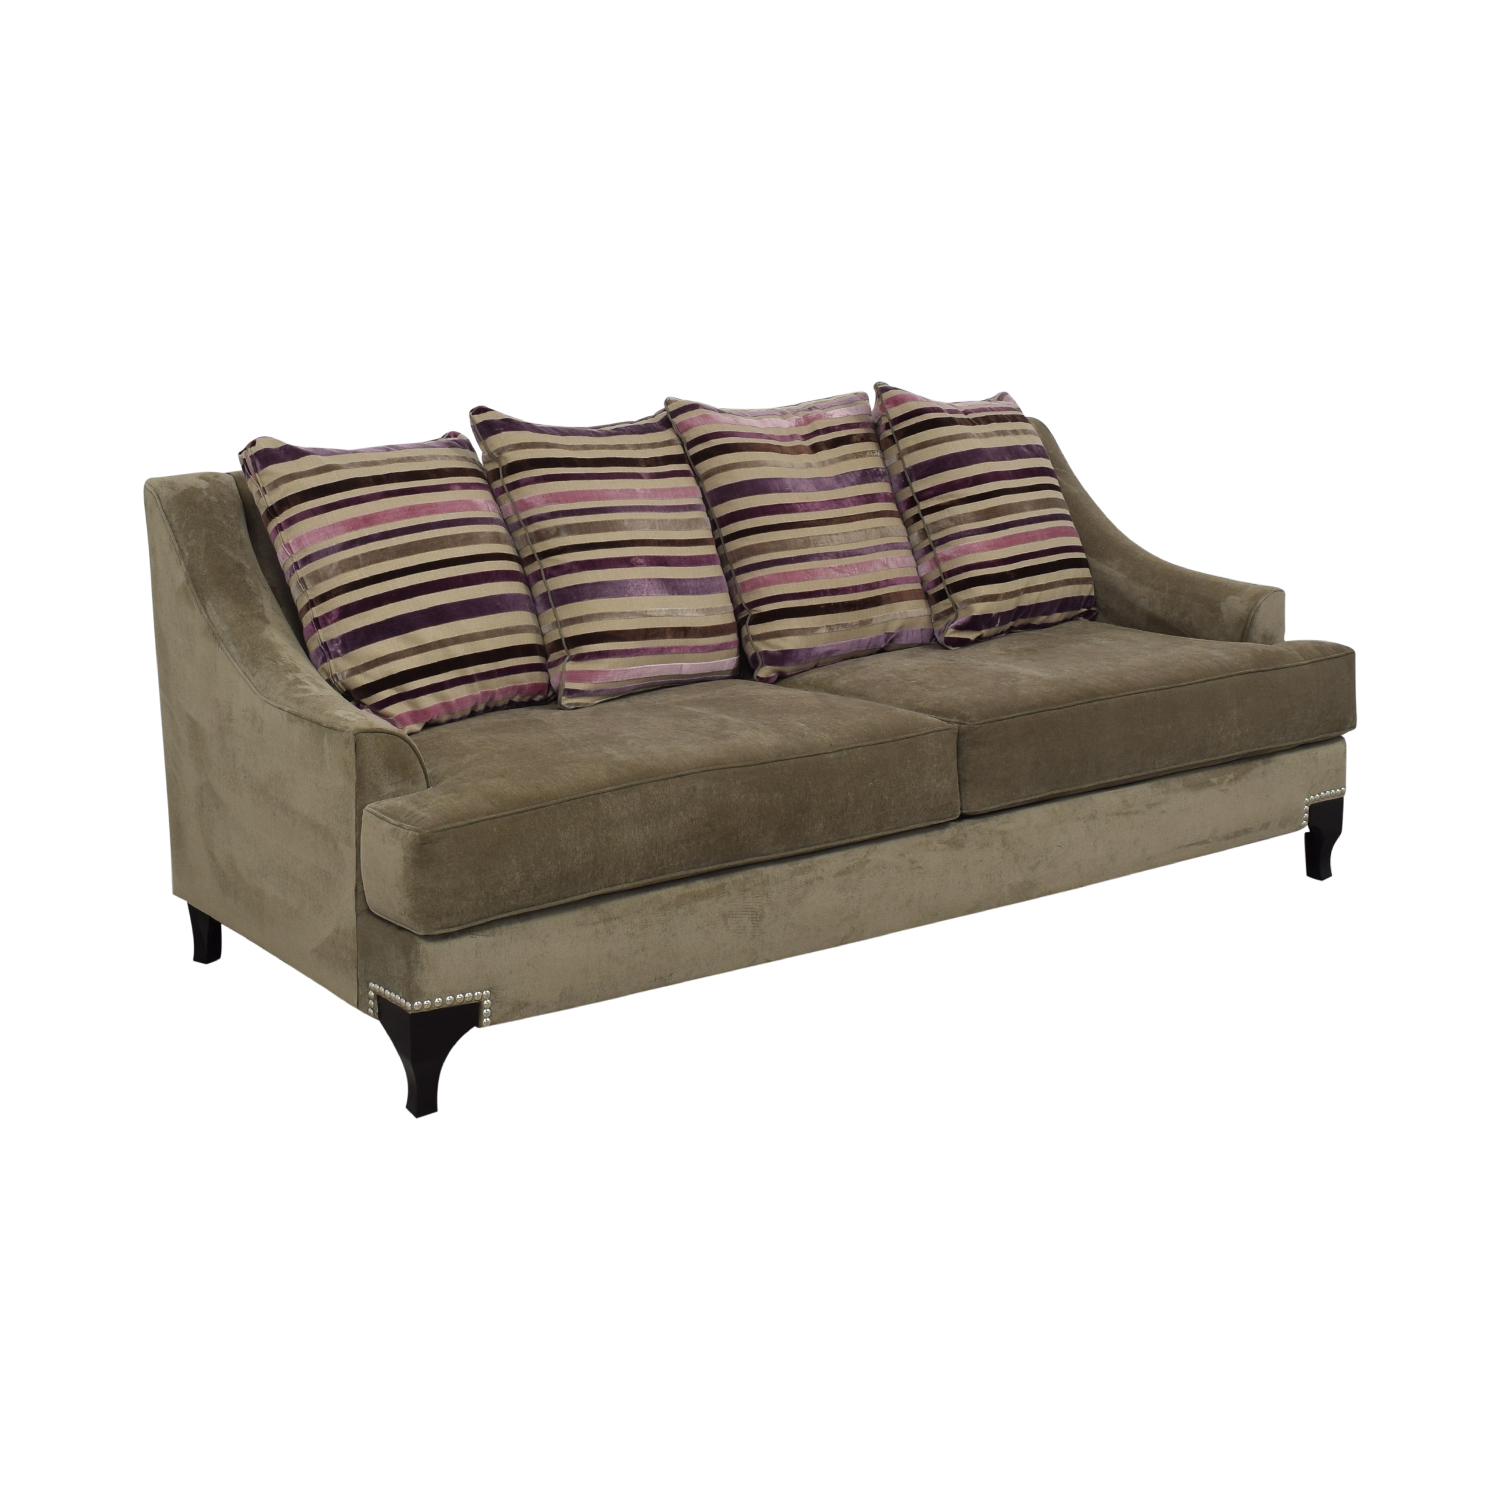 Furniture of America Furniture of America Classic Sofa